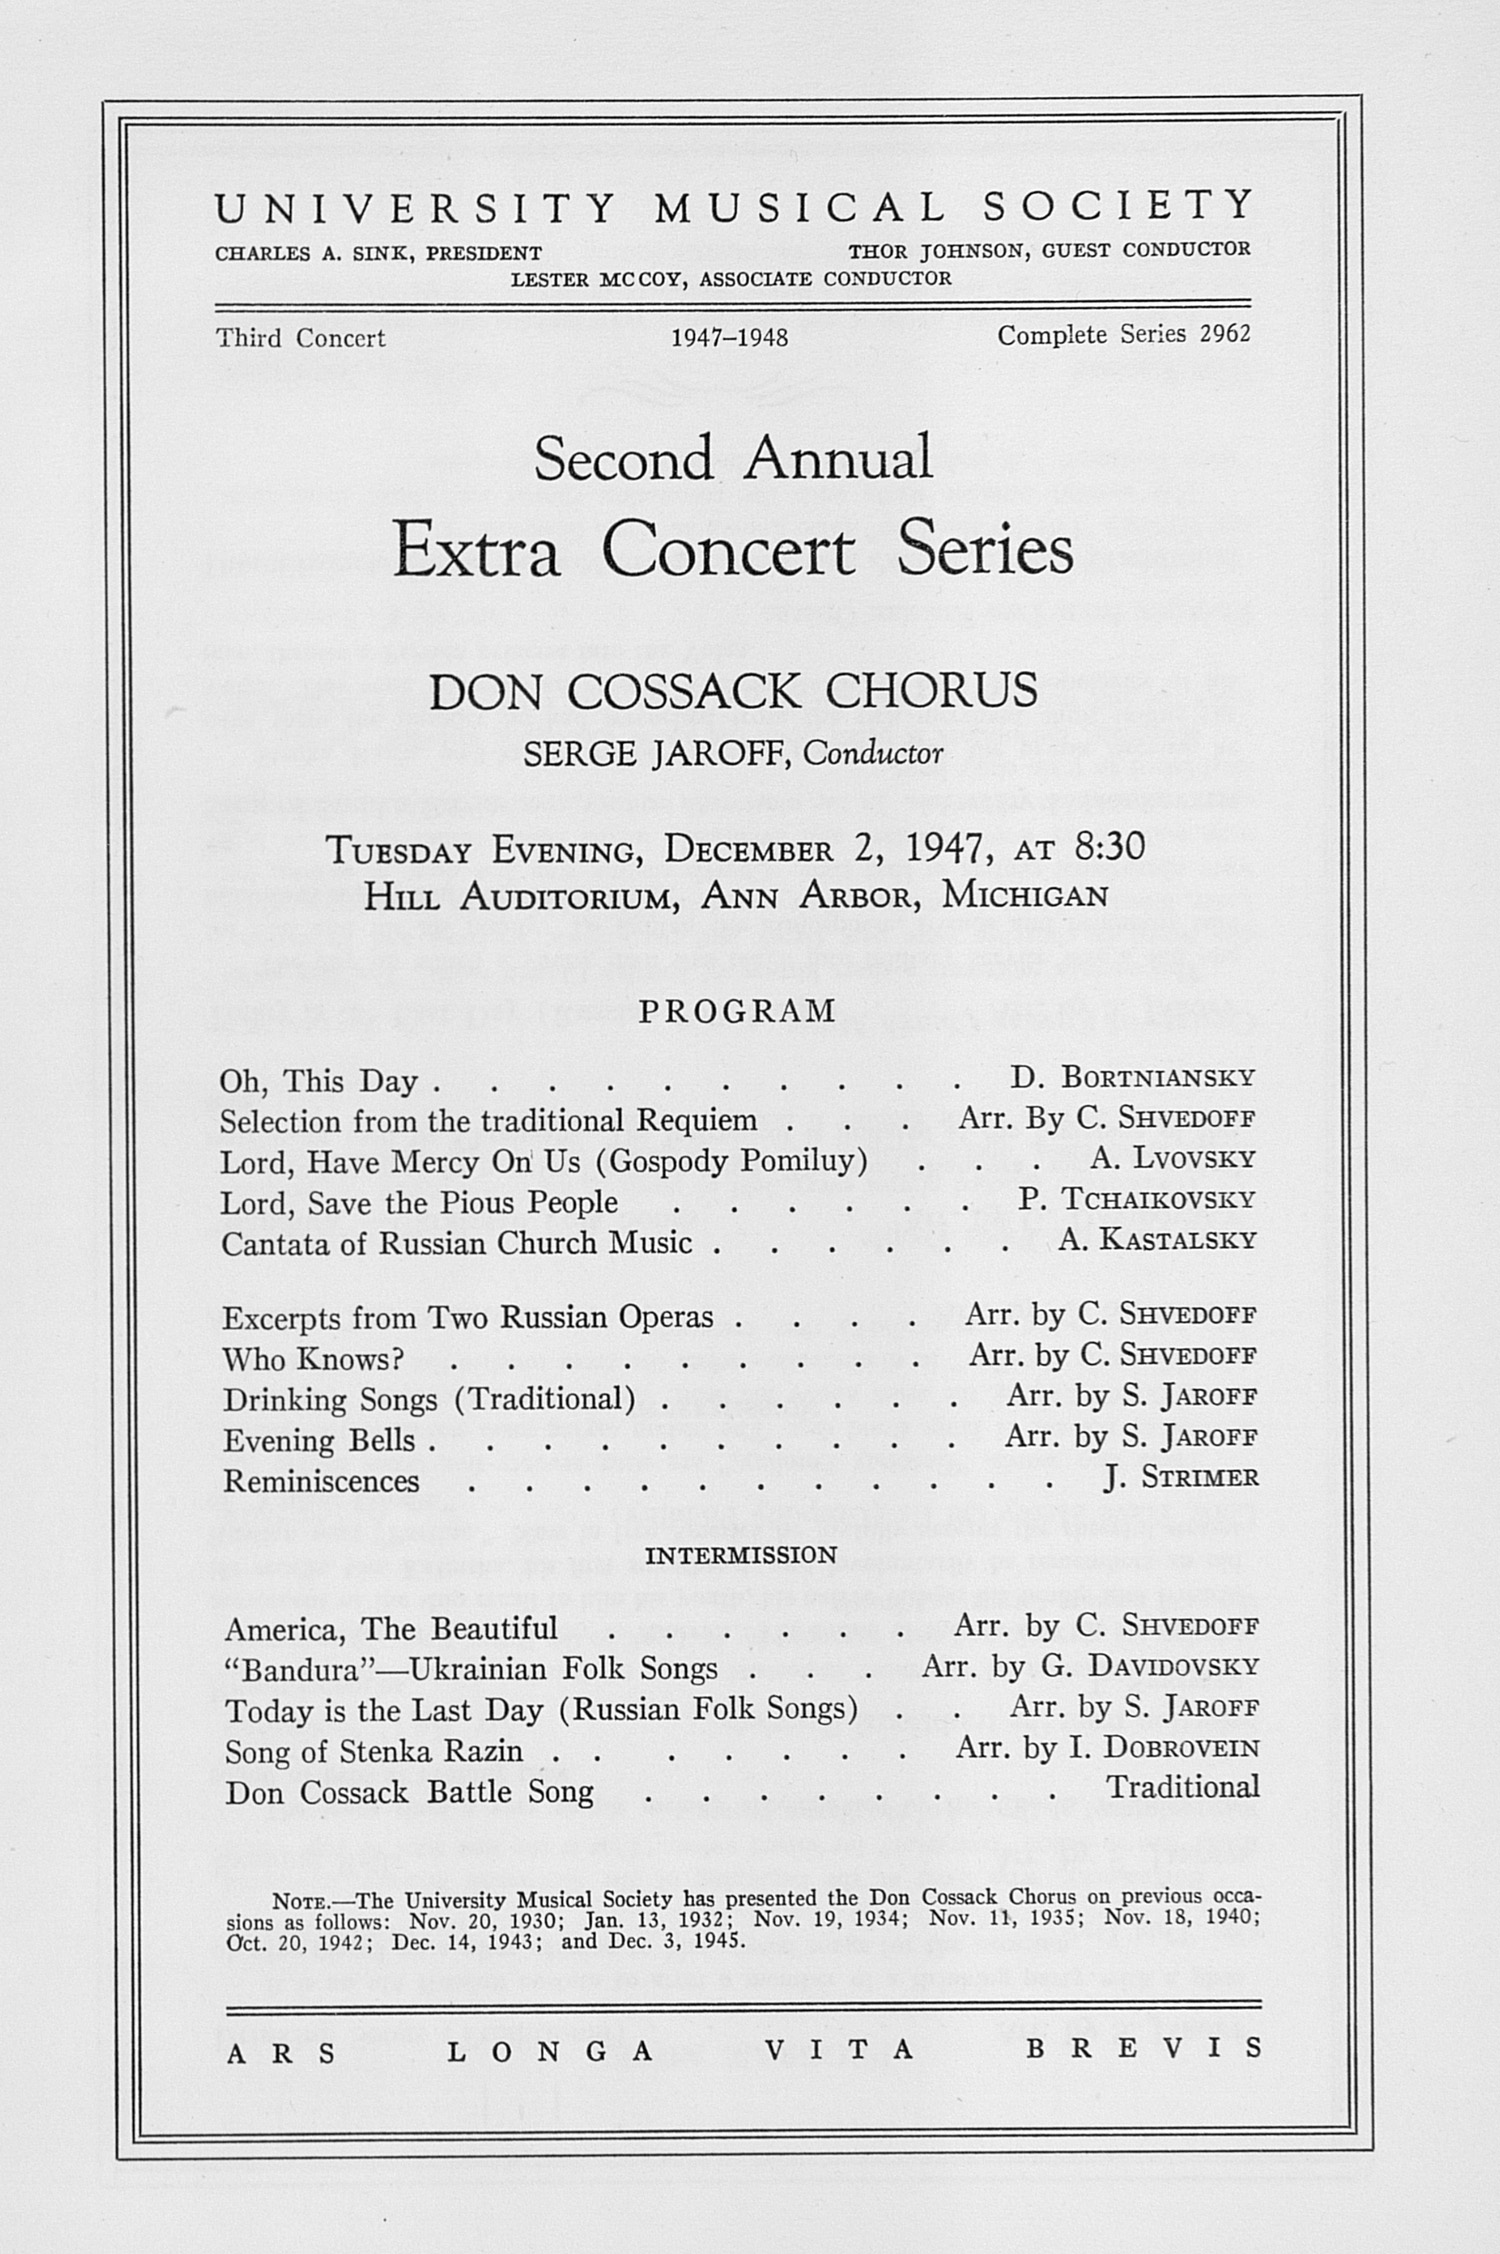 UMS Concert Program, December 2, 1947: Second Annual Extra Concert Series -- Don Cossack Chorus image